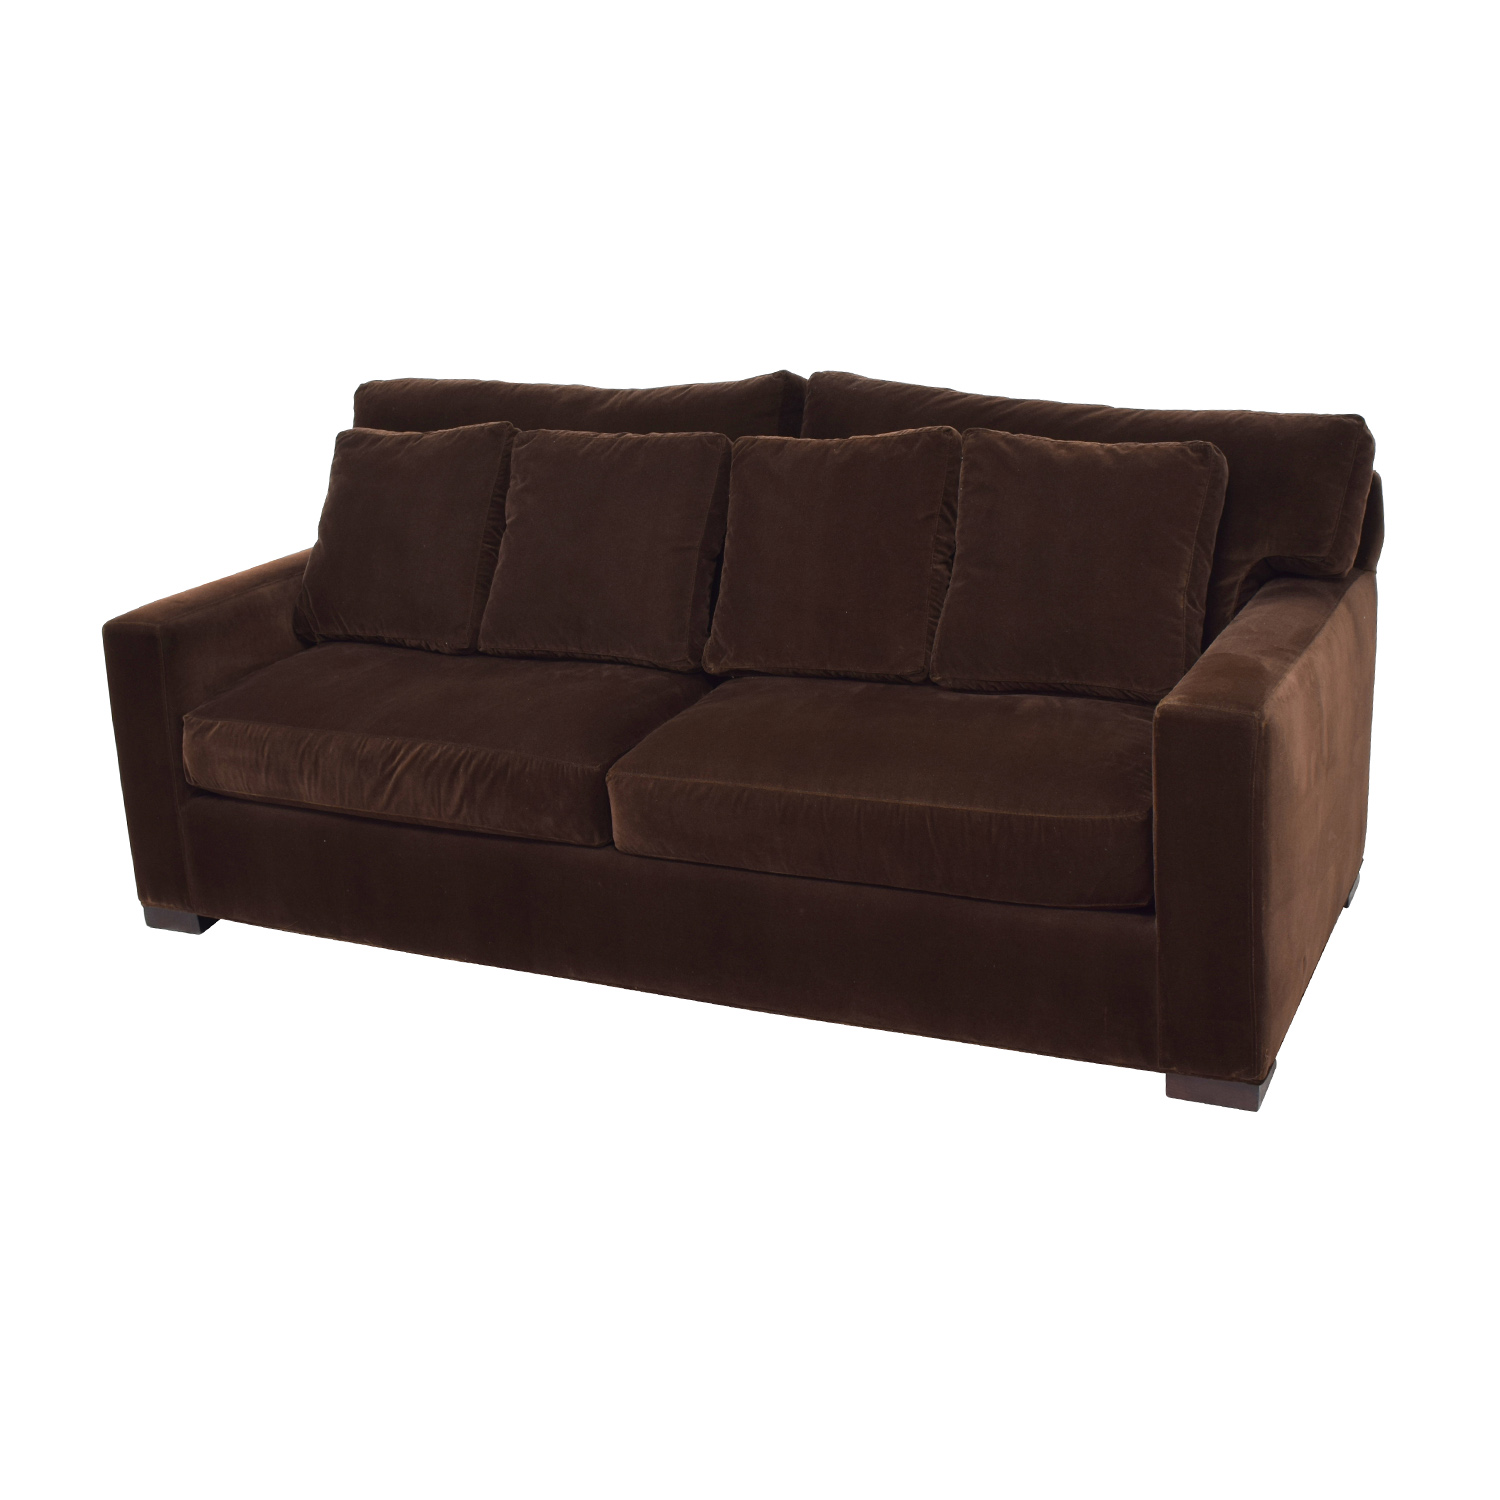 78 off crate and barrel crate barrel axis ii brown velvet sofa sofas. Black Bedroom Furniture Sets. Home Design Ideas